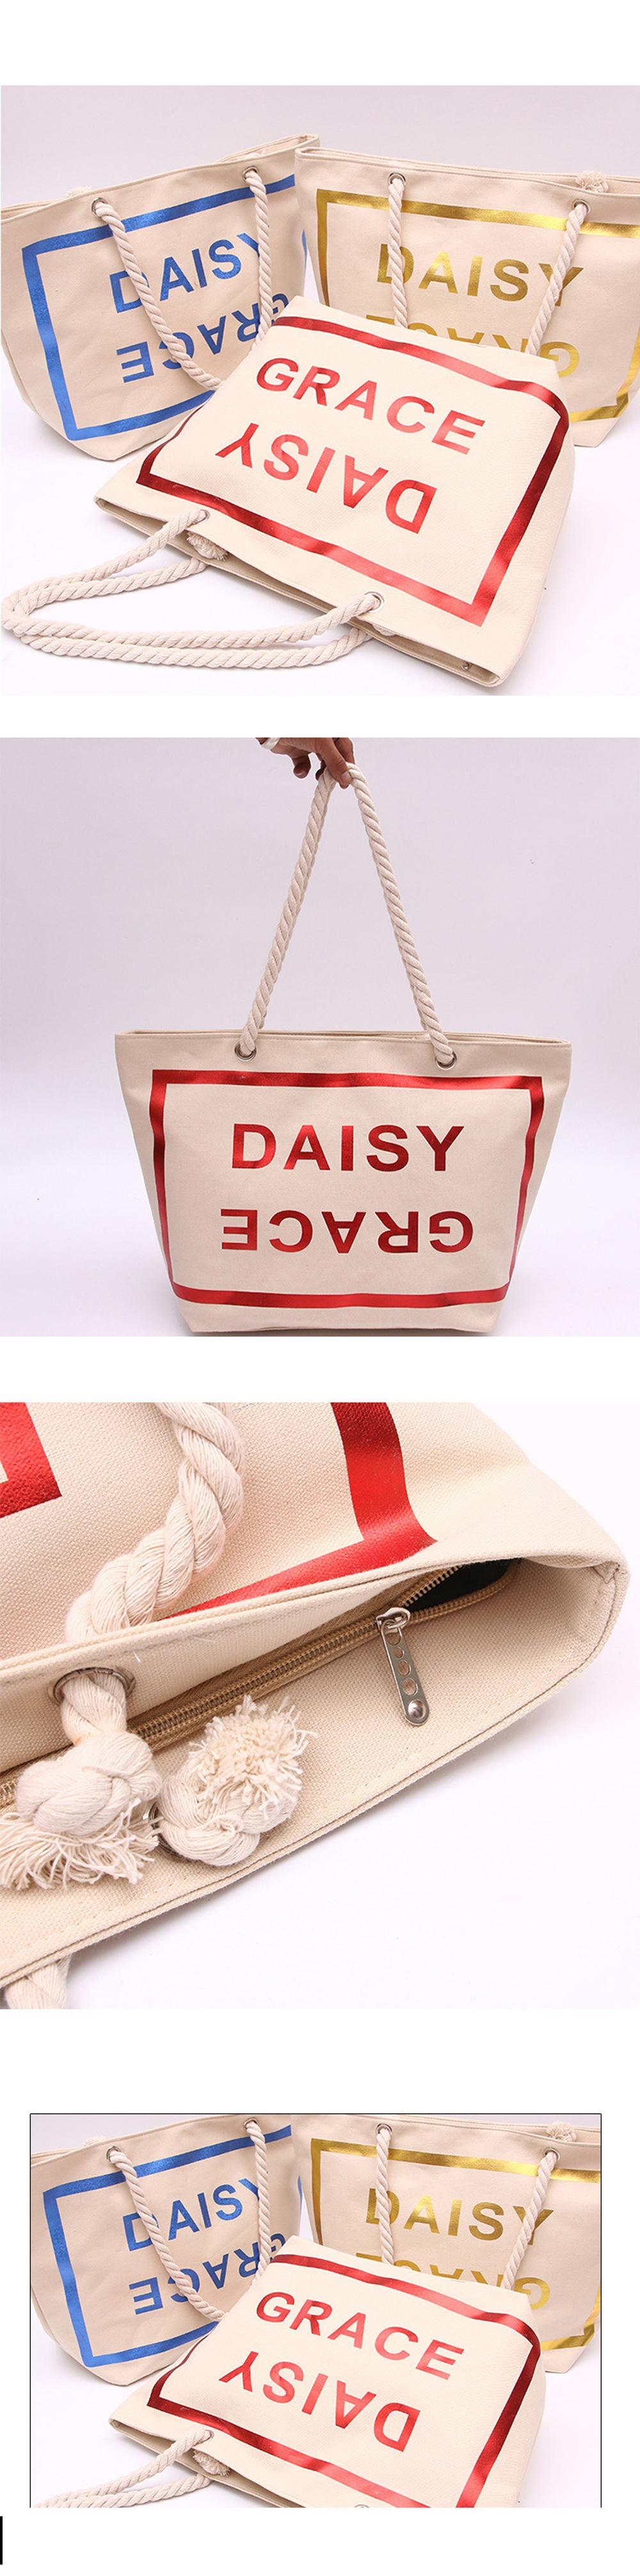 2019 newest words printing promotional canvas handle tote beach bag